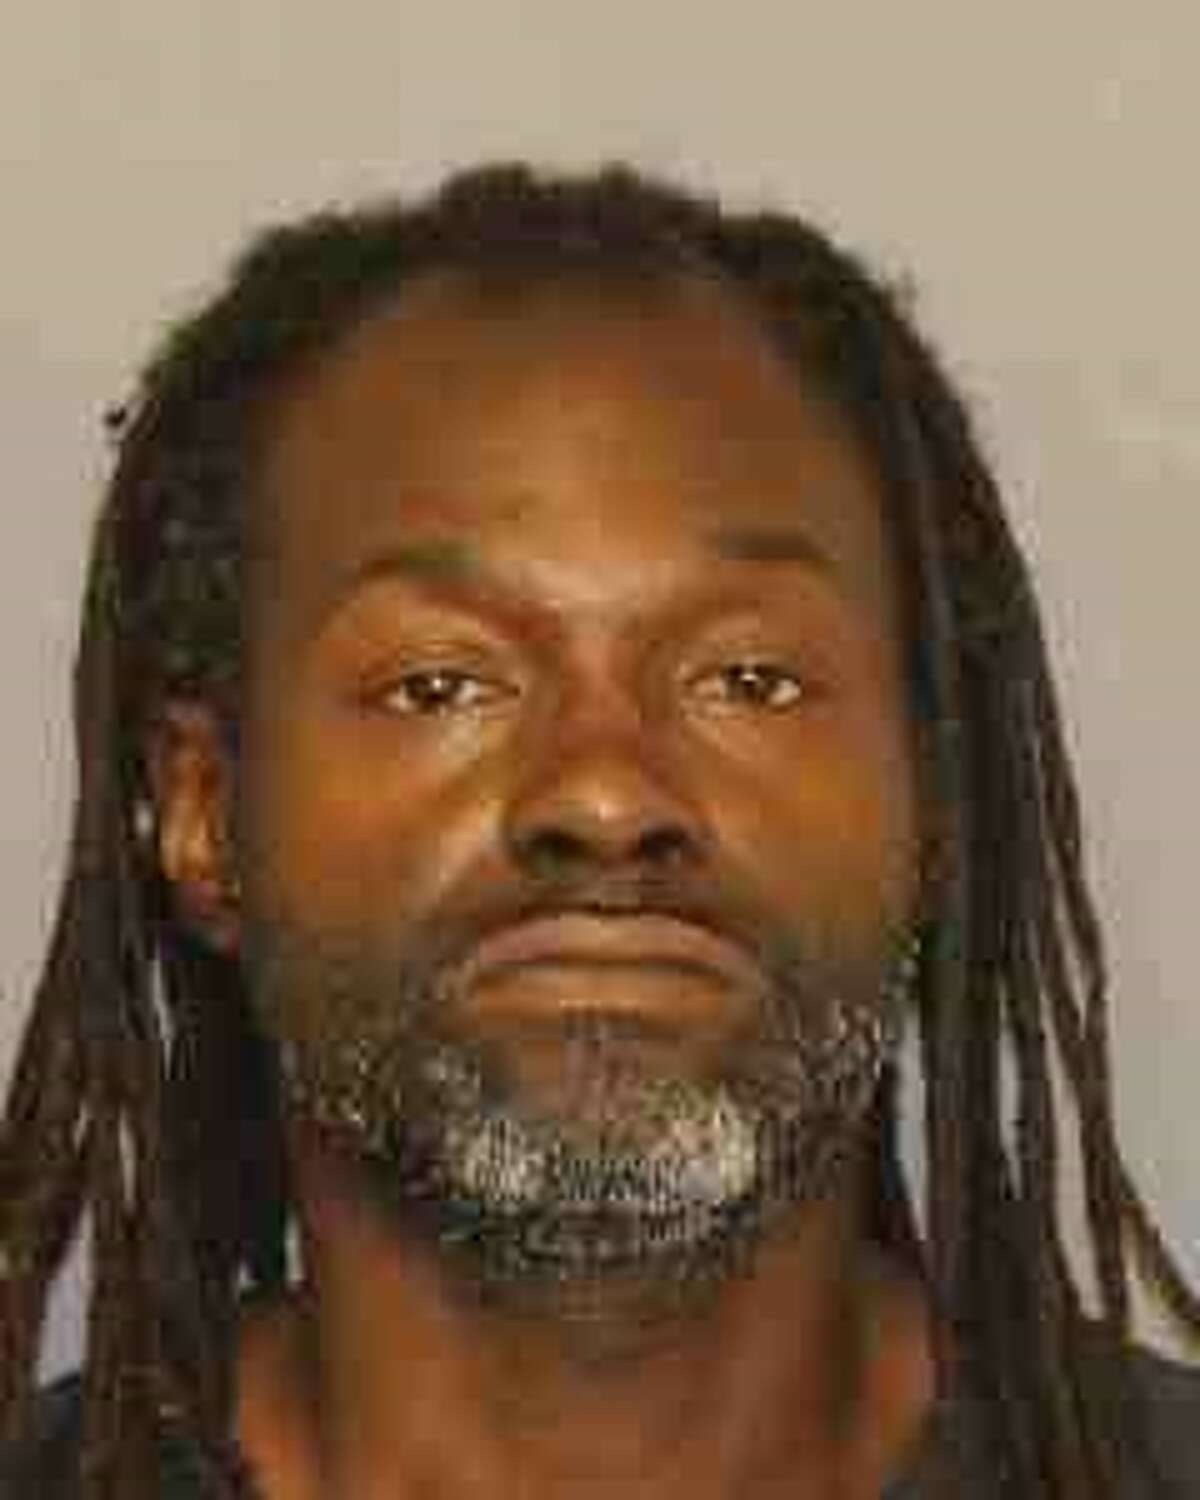 Omar L. Childress, 42, of Schenectady was accused of breaking into a Rotterdam recycling center and attempting to redeem some 4,000 cans for cash Sunday, August 7, 2016. (Rotterdam police)